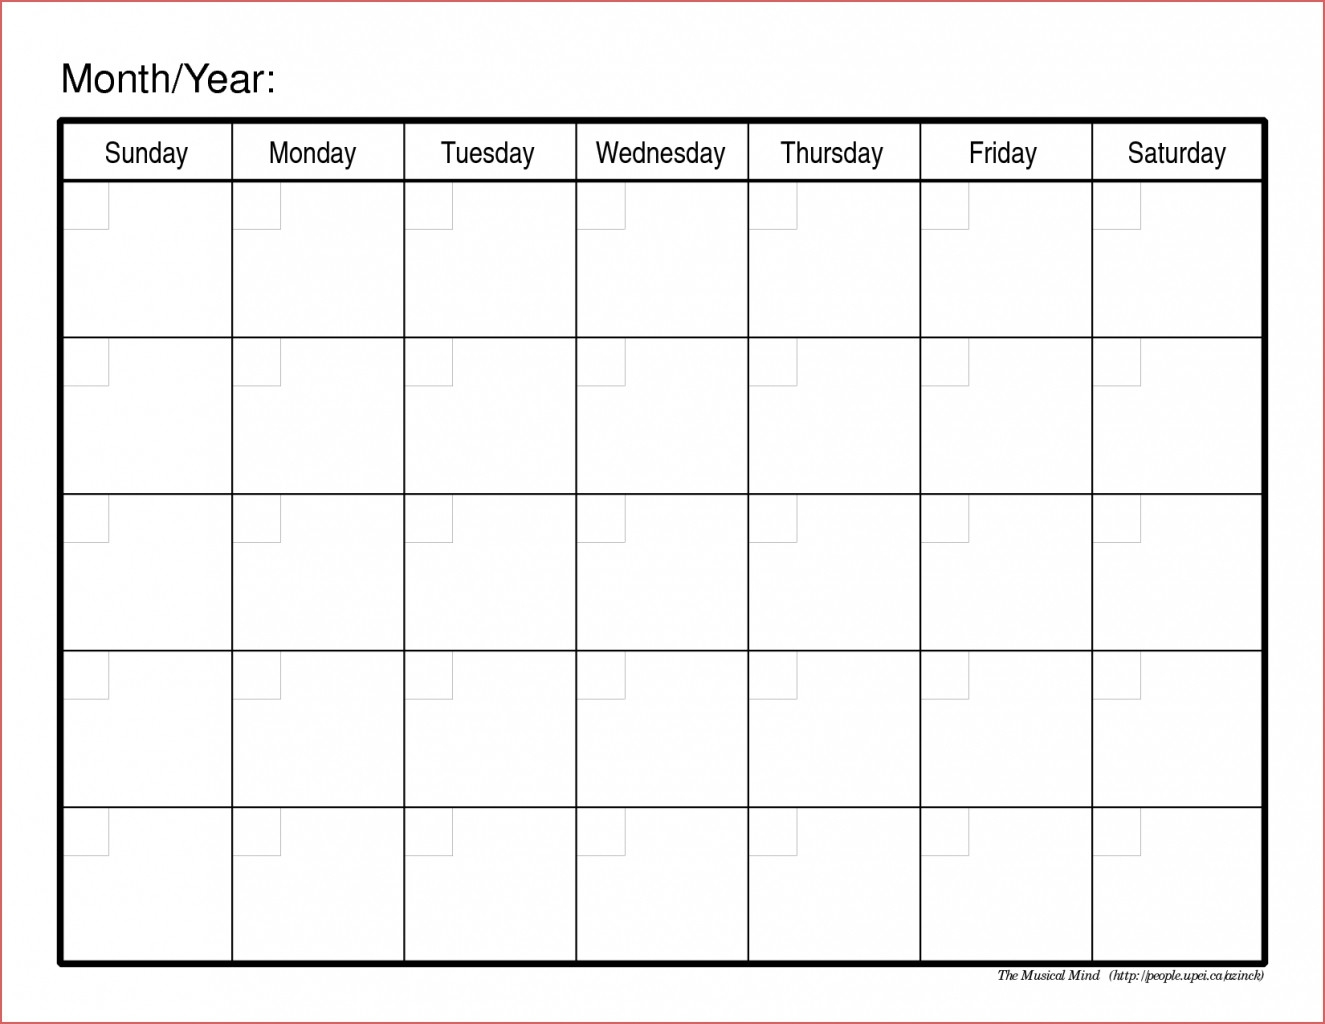 Online Calendar Planner Printable Calendar Month Printable Free throughout Template Of A Blank Calendar Of A Month